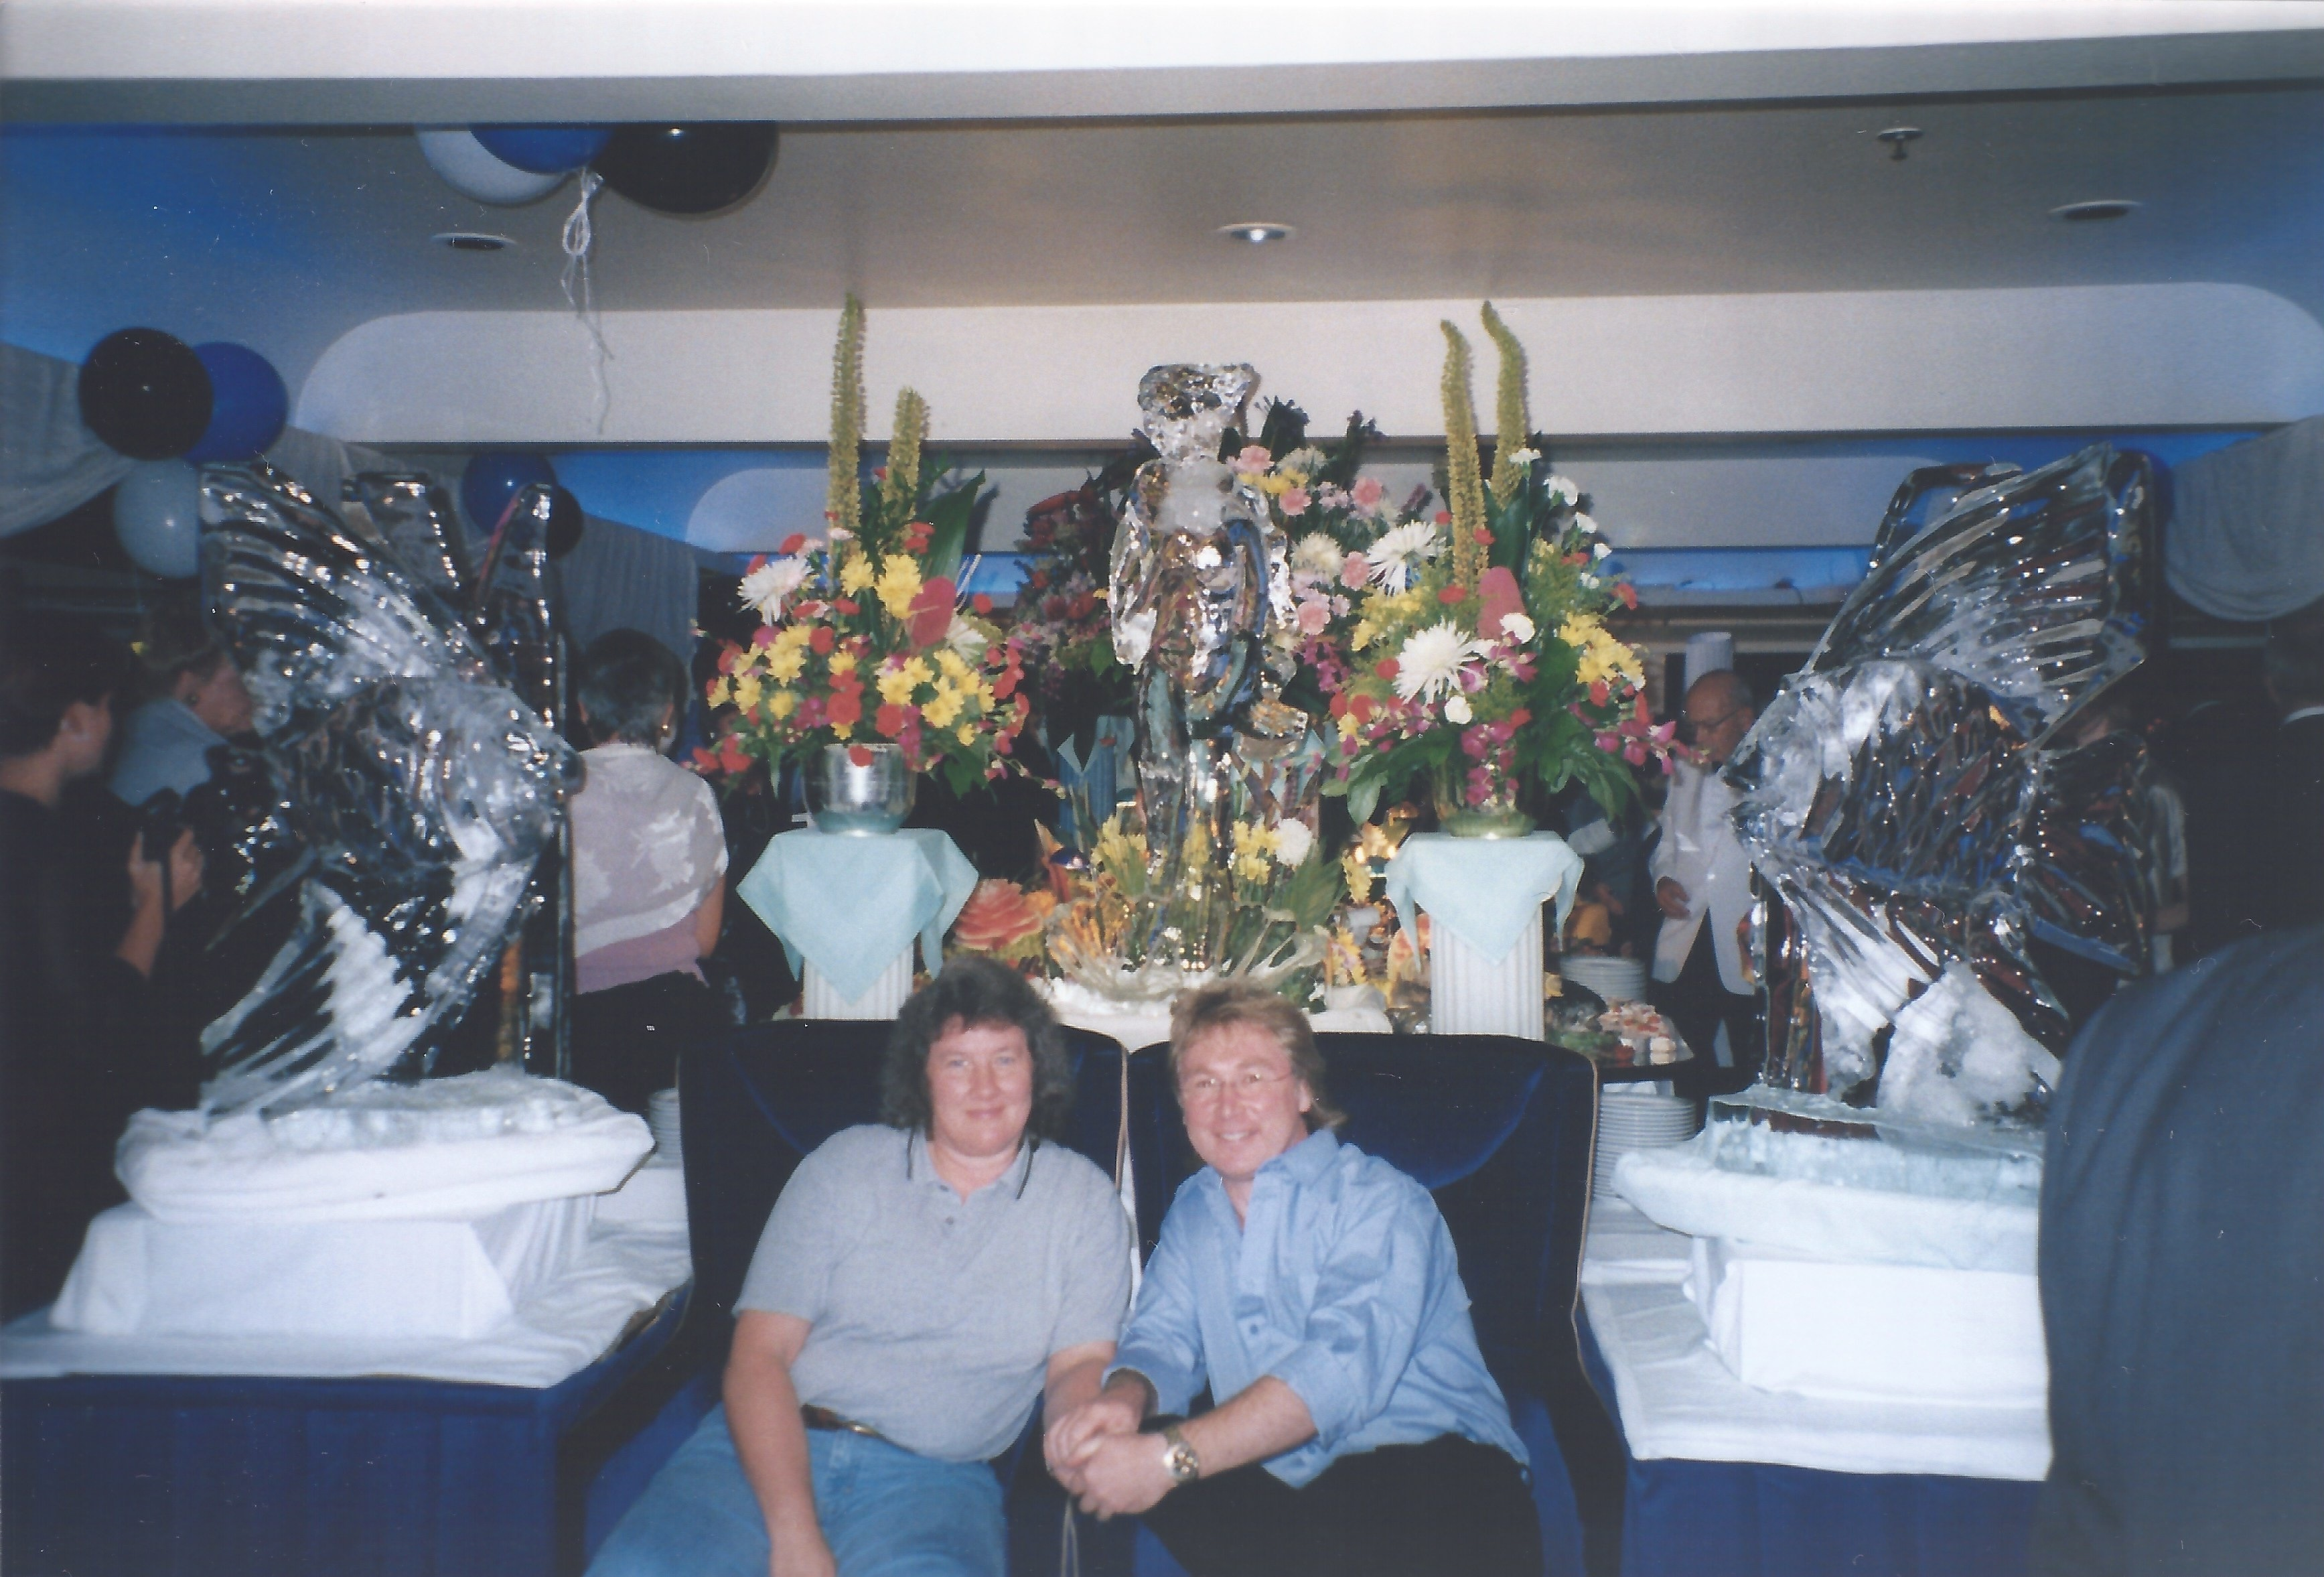 Photograph of the author and his wife sat in front of three large ice carvings